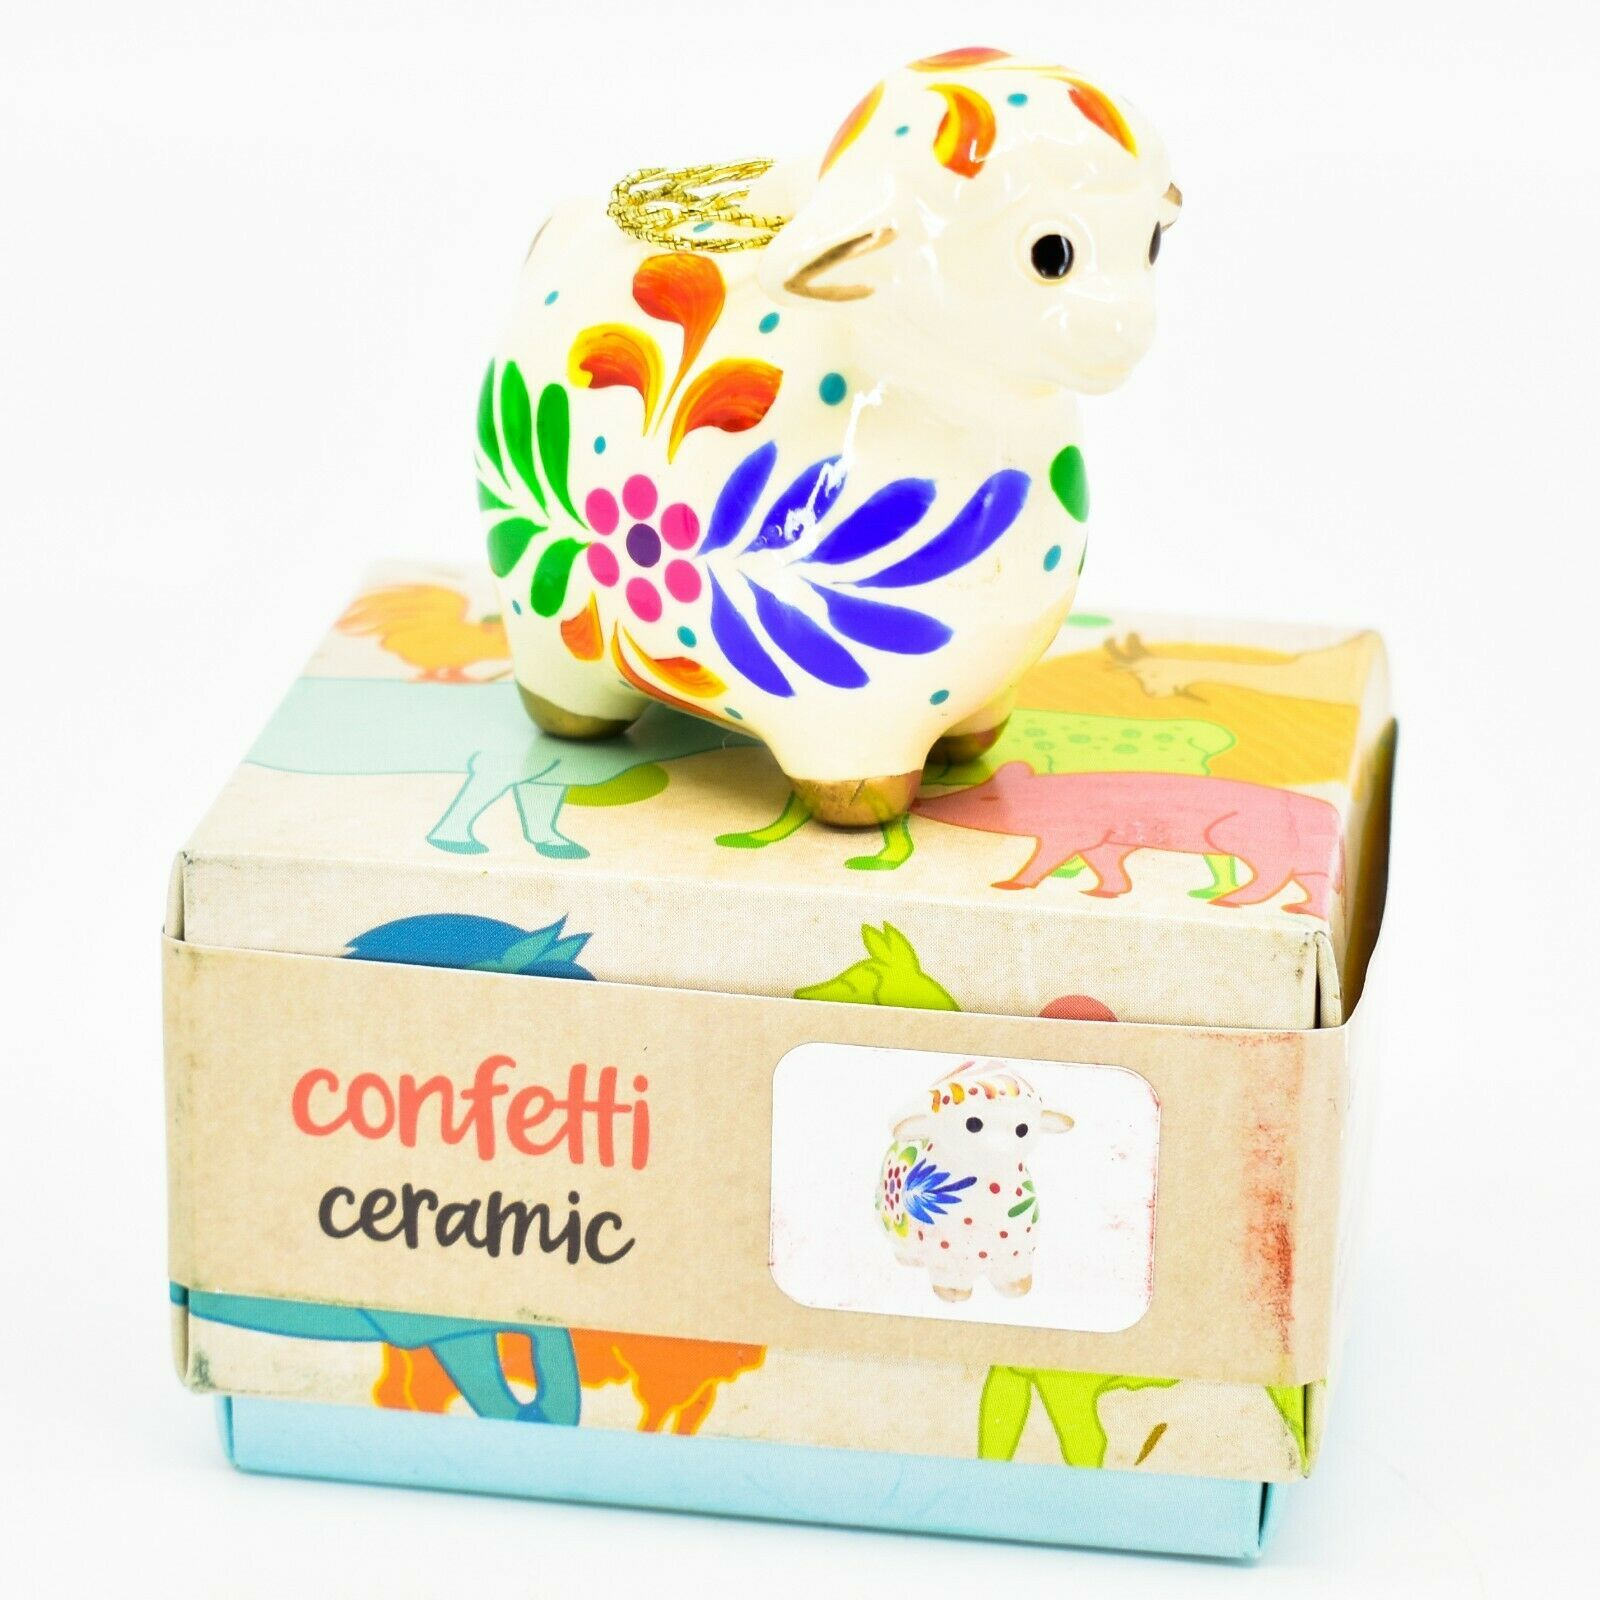 Handcrafted Painted Ceramic Sheep Lamb Confetti Series Ornament Made in Peru